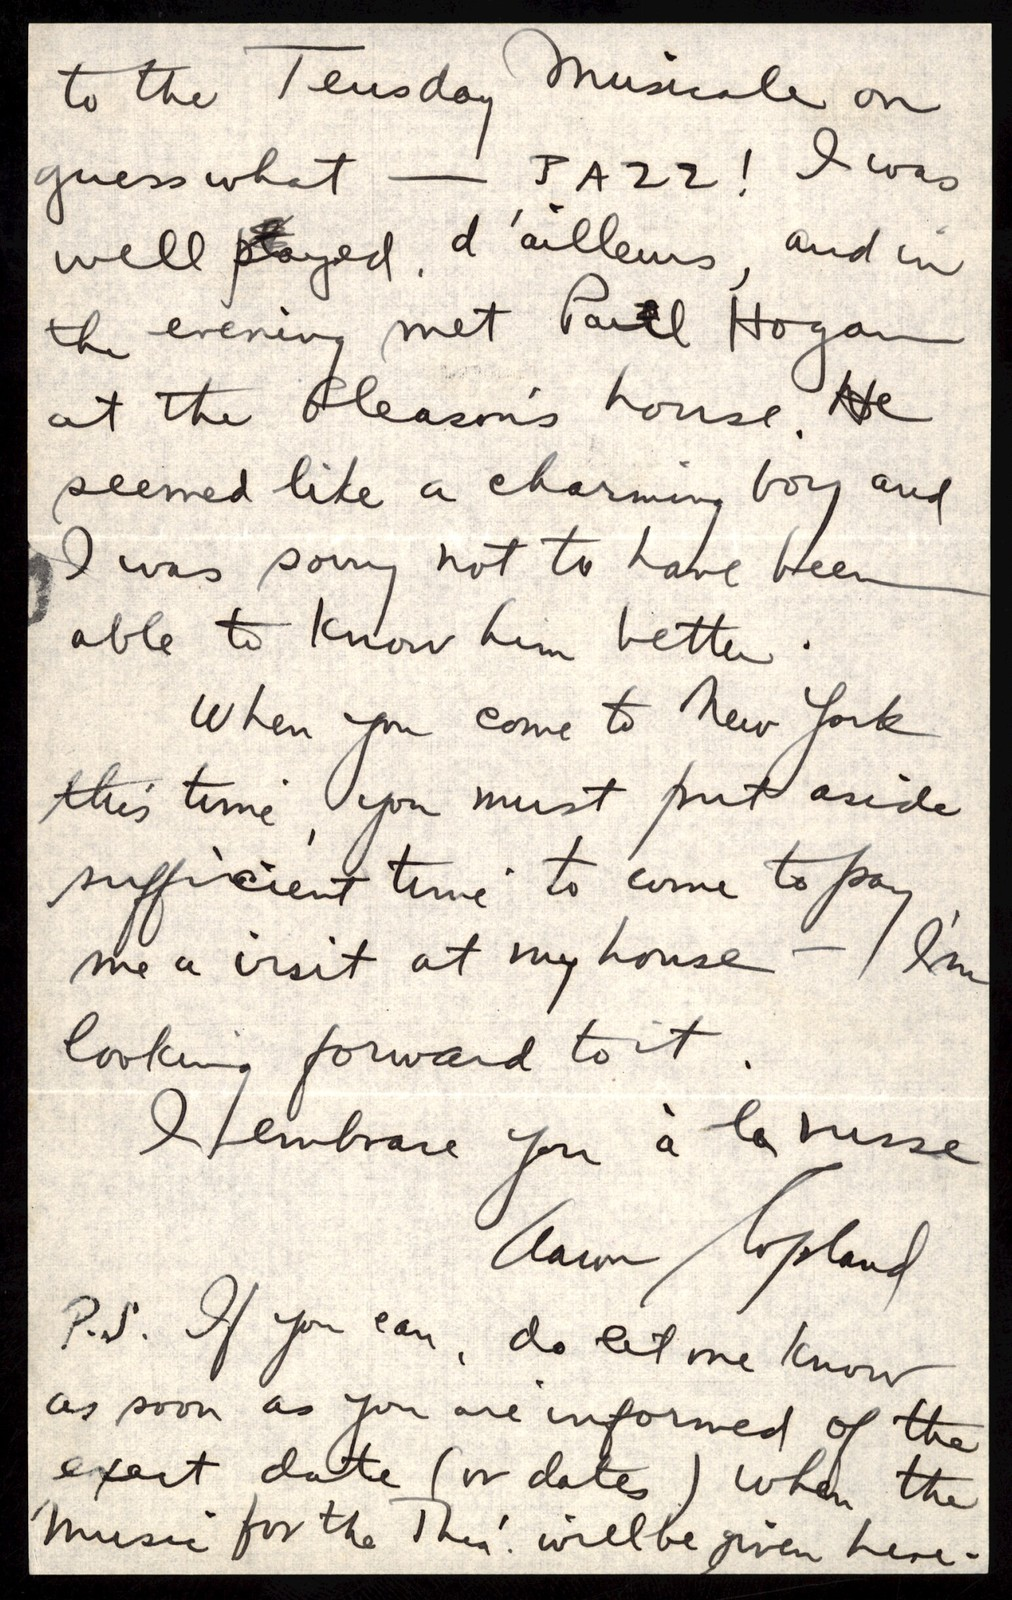 Letter from Aaron Copland to Nicloas Slonimsky, December 13, 1925.